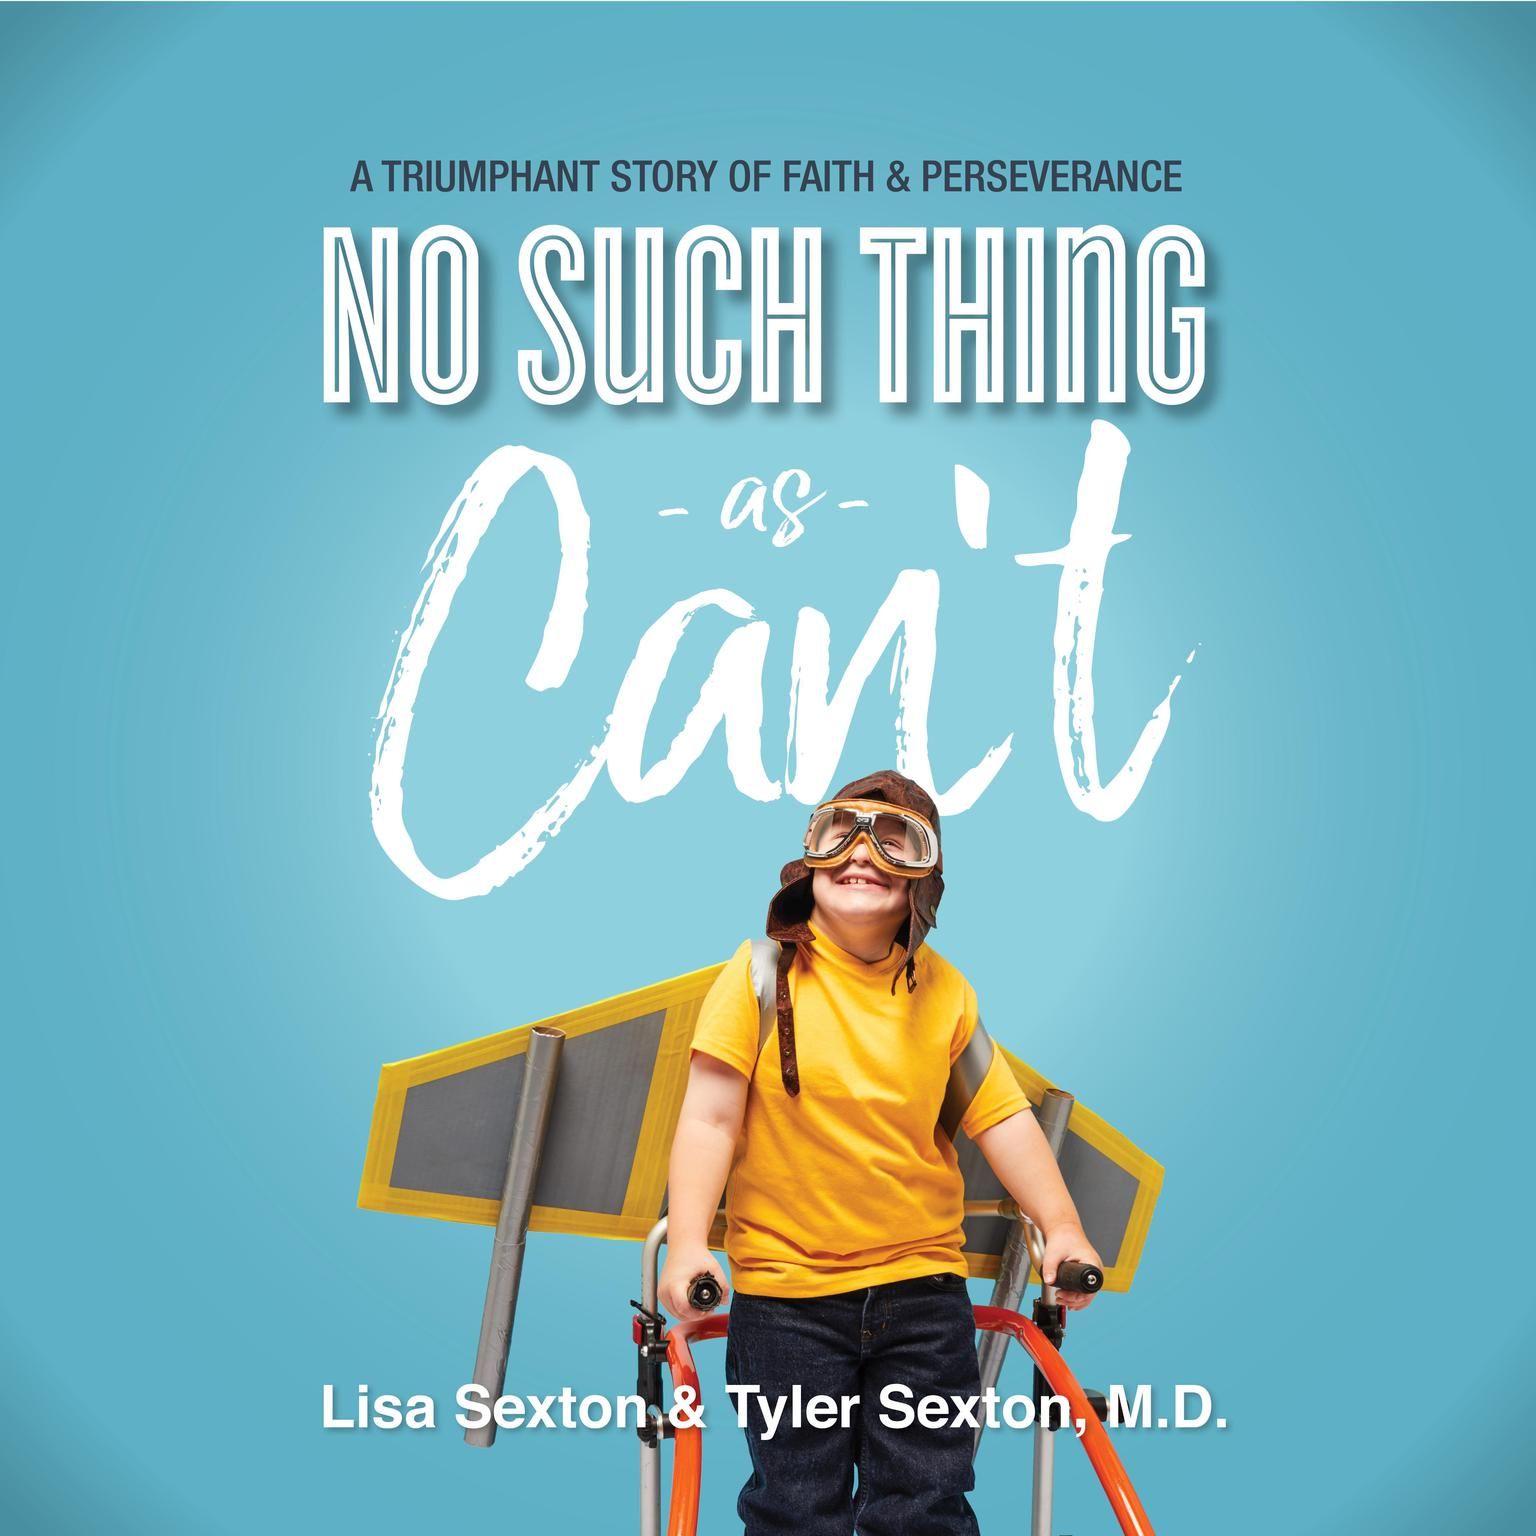 No Such Thing As Cant: A Triumphant Story of Faith and Perserverance Audiobook, by Lisa Sexton